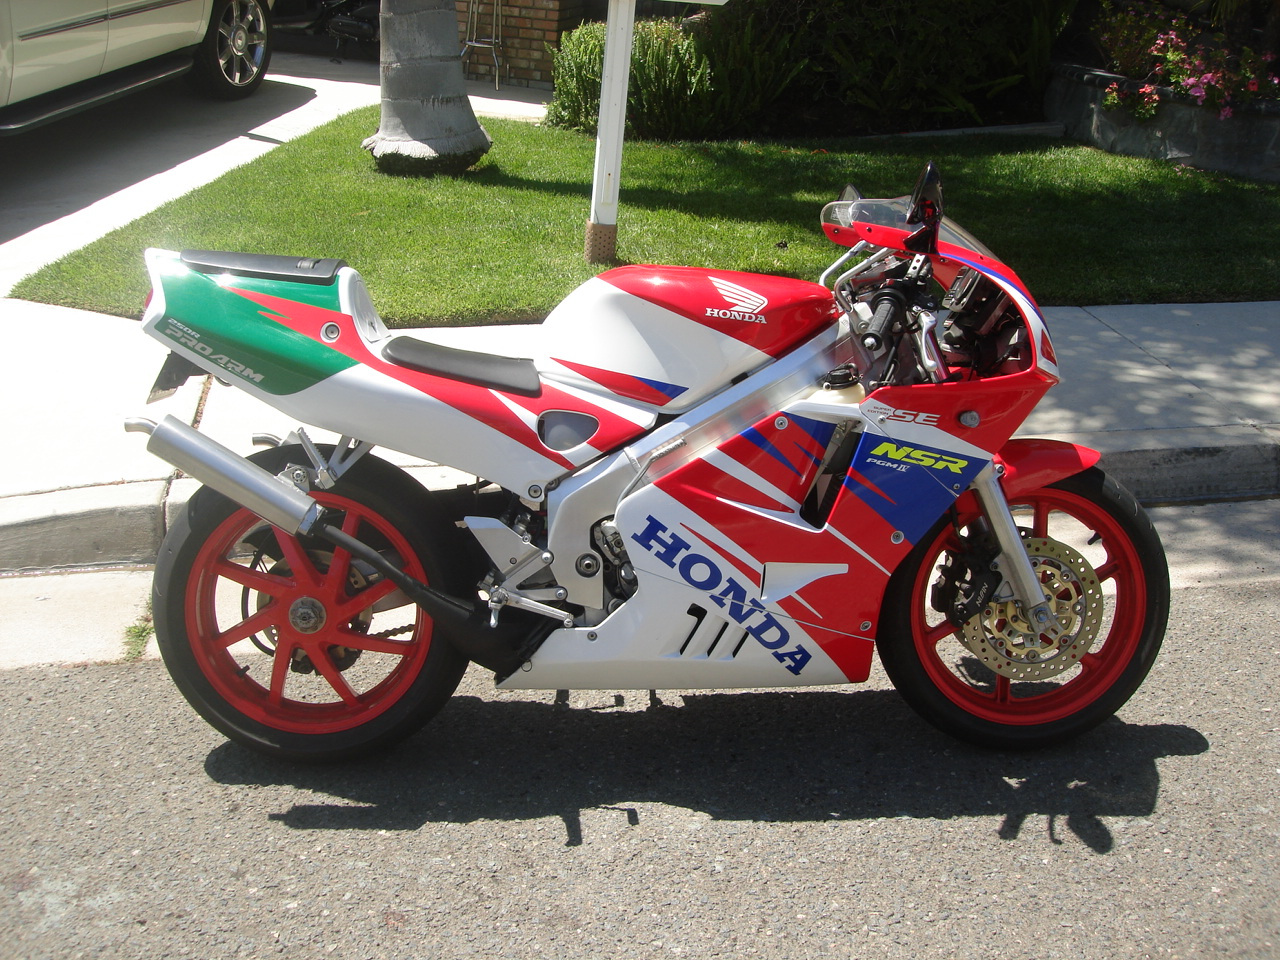 Motorcycle Auction Sites